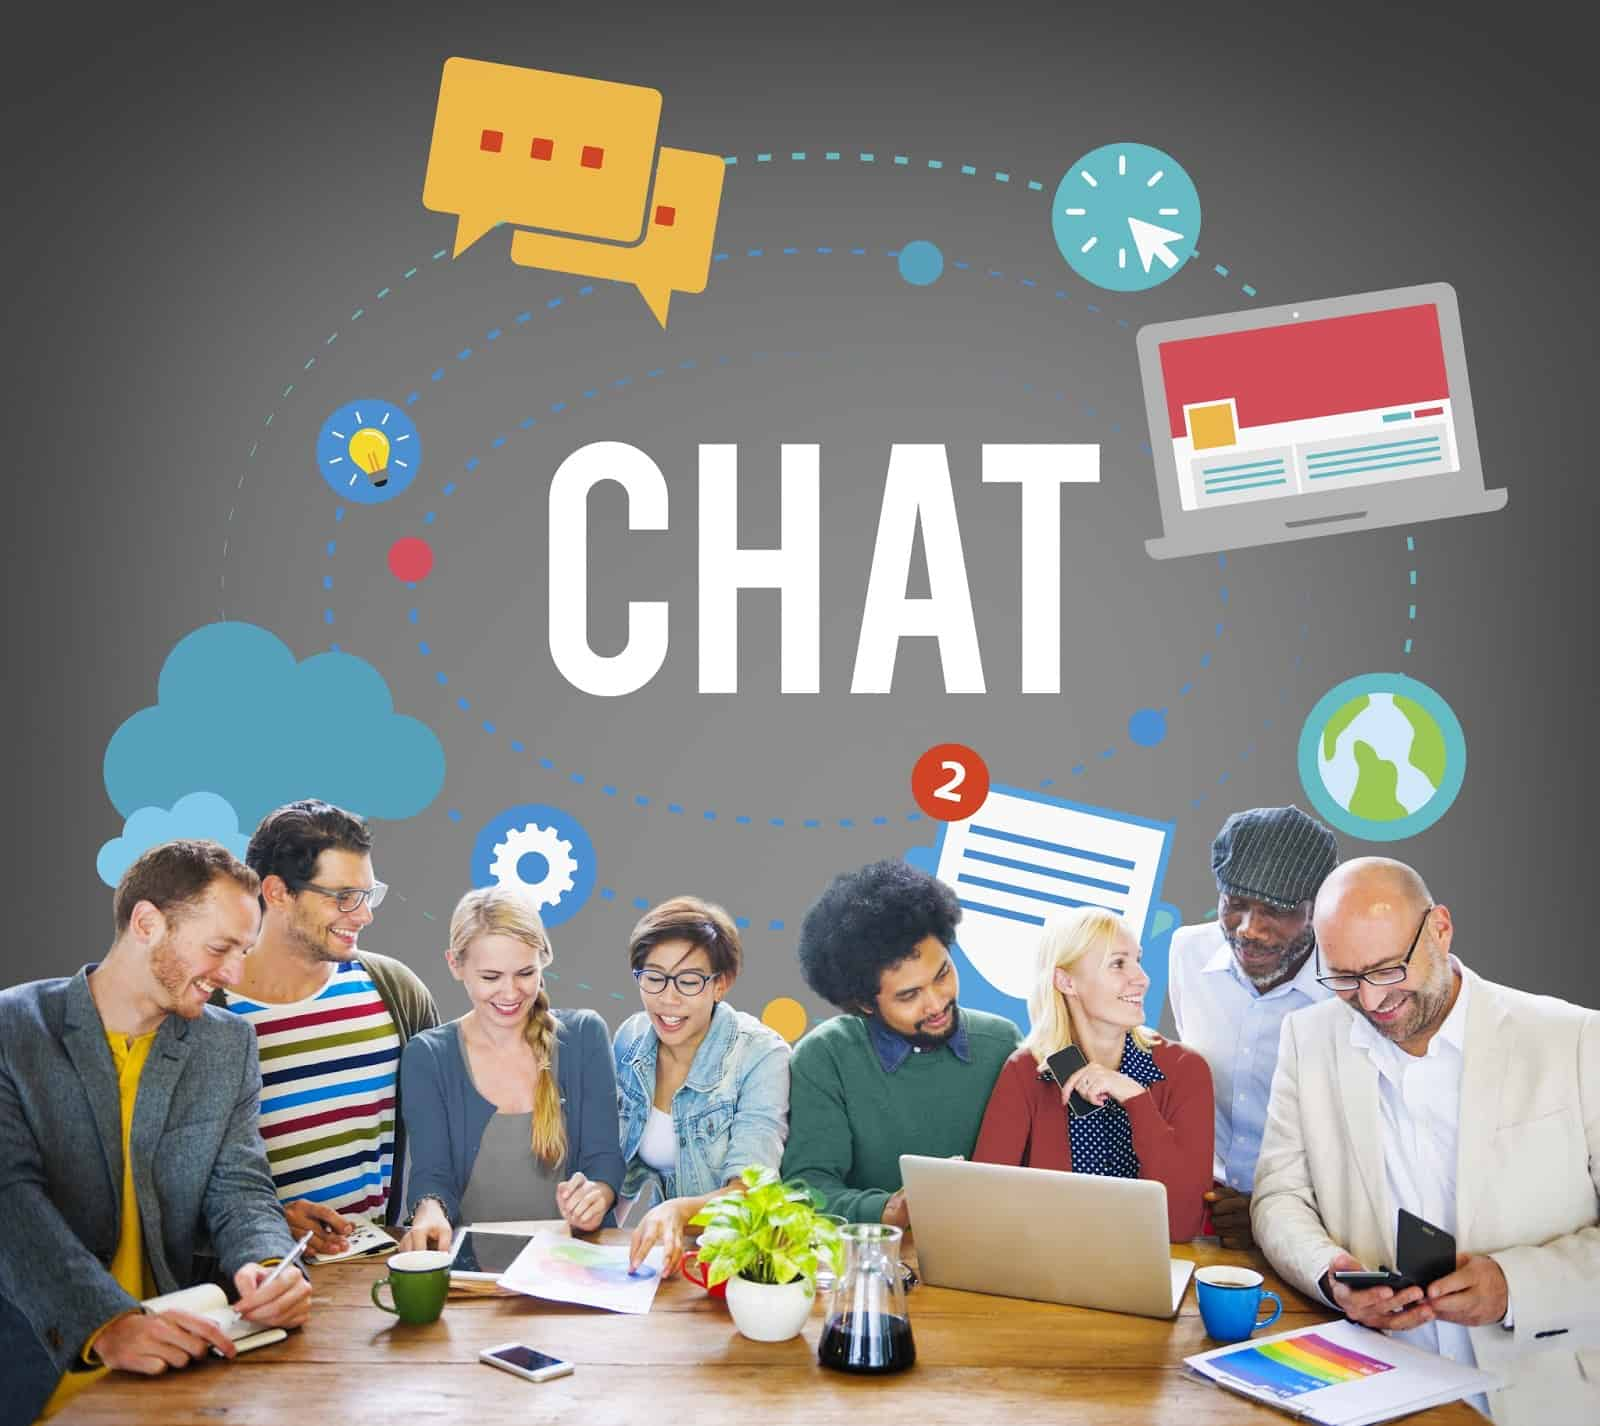 SuiteCRM Integration to Provide Live website chat tool Application on Your Webpage